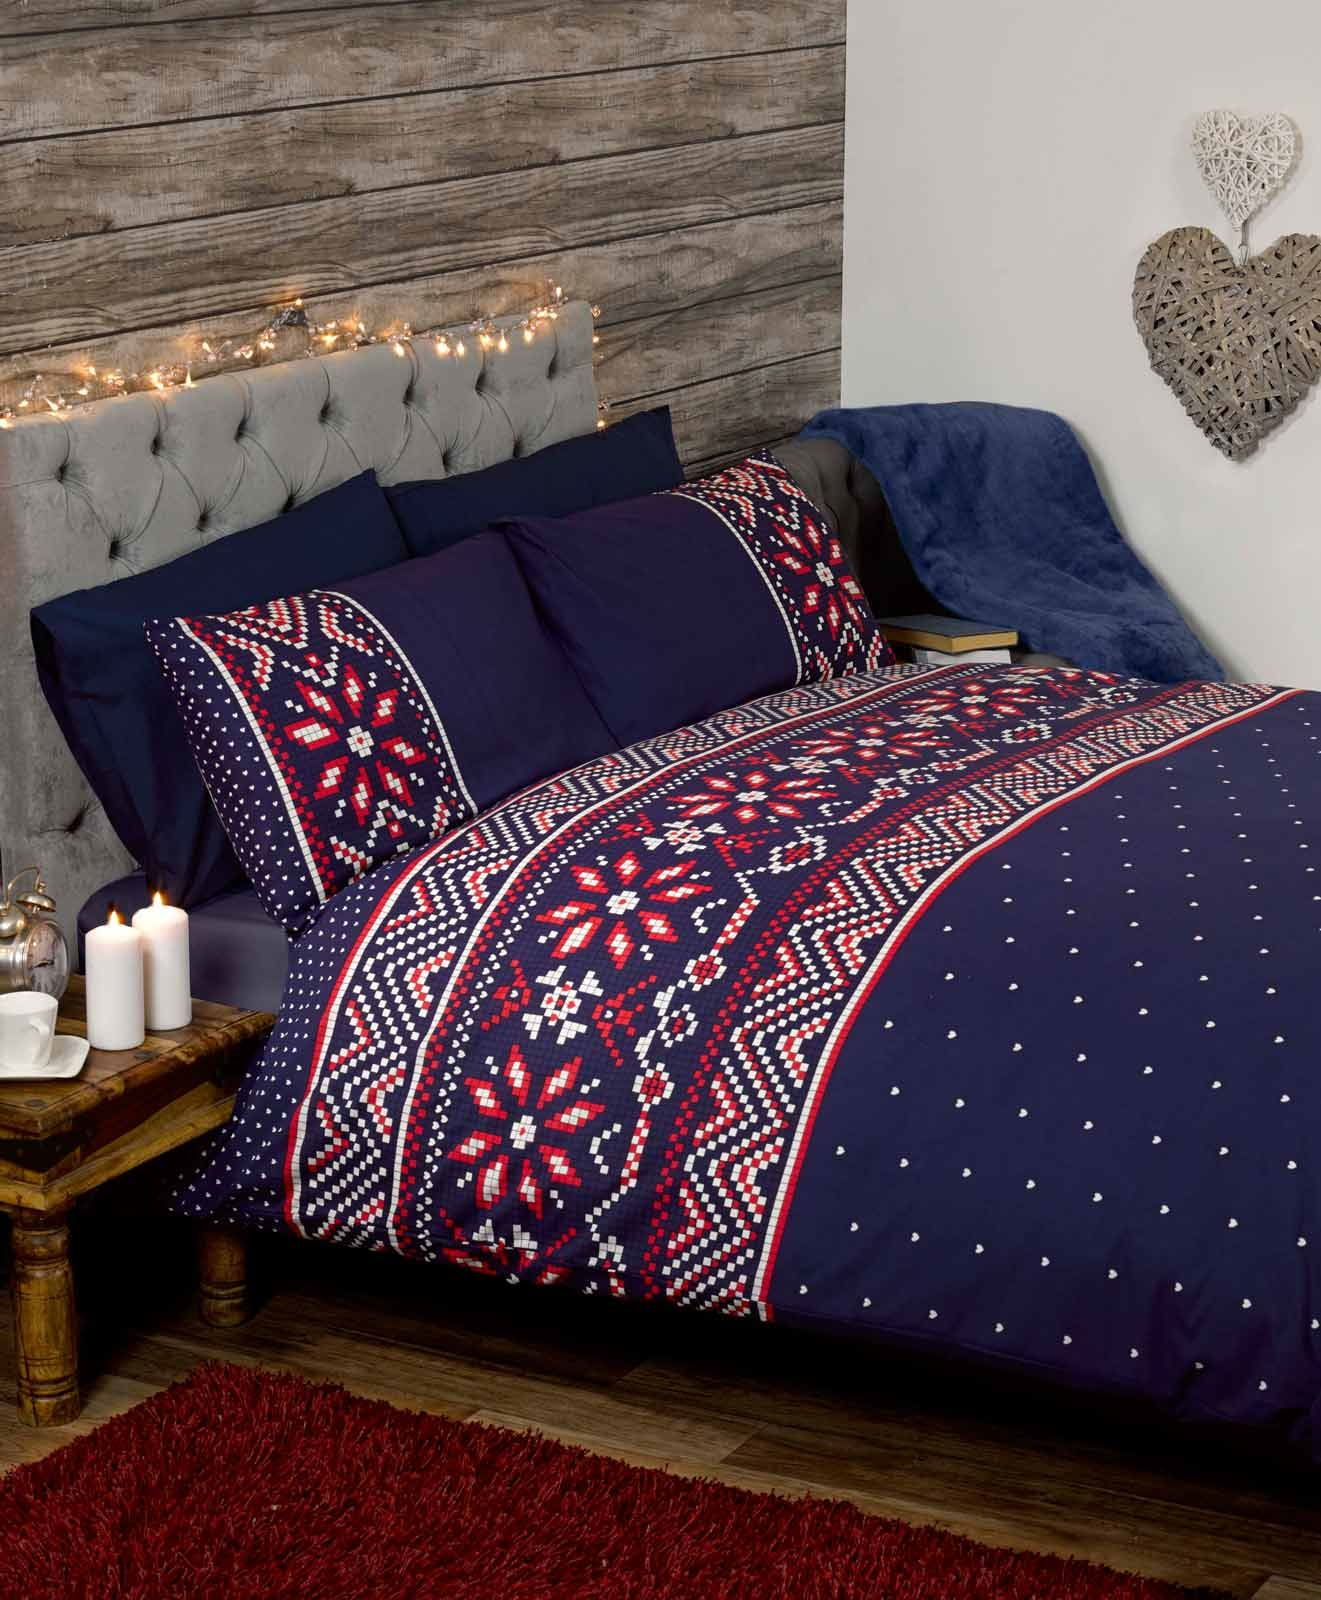 Nordic Fairisle Christmas Duvet Covers Quilt Sets Navy Red